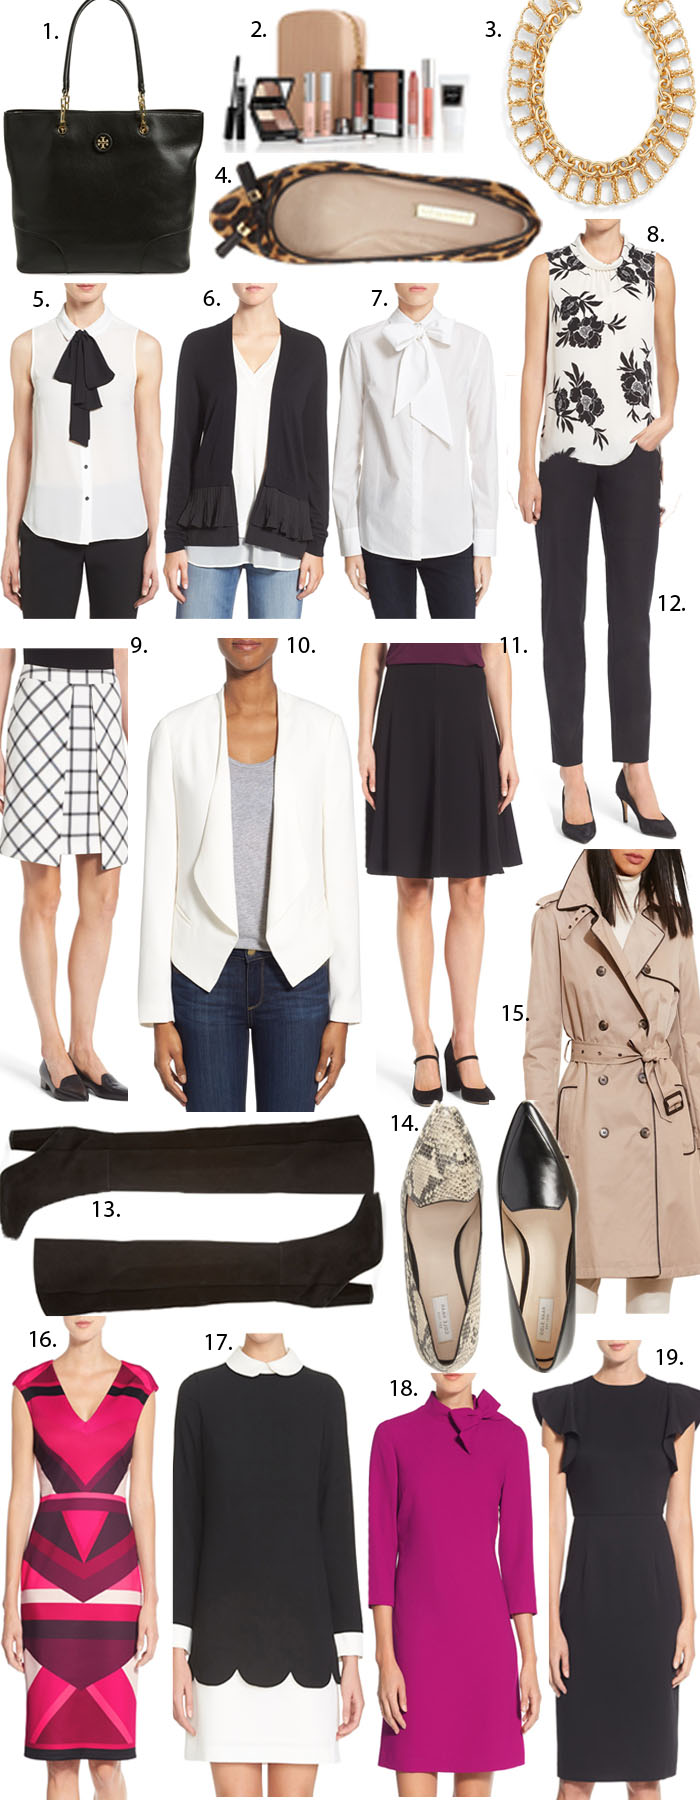 Nordstrom Anniversary Sale Work wear styled by popular Texas fashion blogger, Style Your Senses